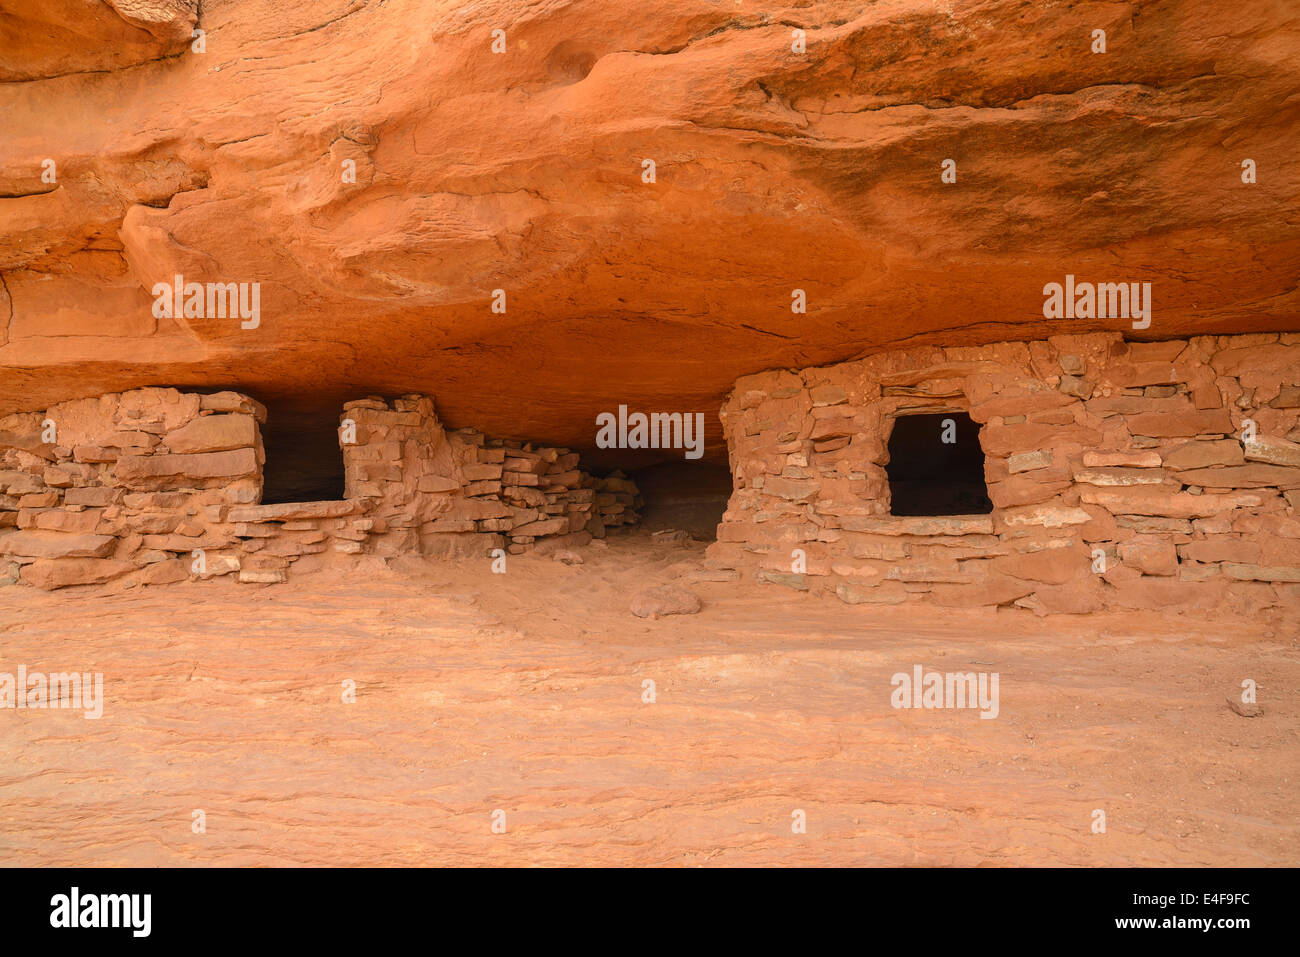 Ancient Indian Granary, Aztec Butte, Canyonlands National Park, Islands in the Sky, Utah, USA - Stock Image